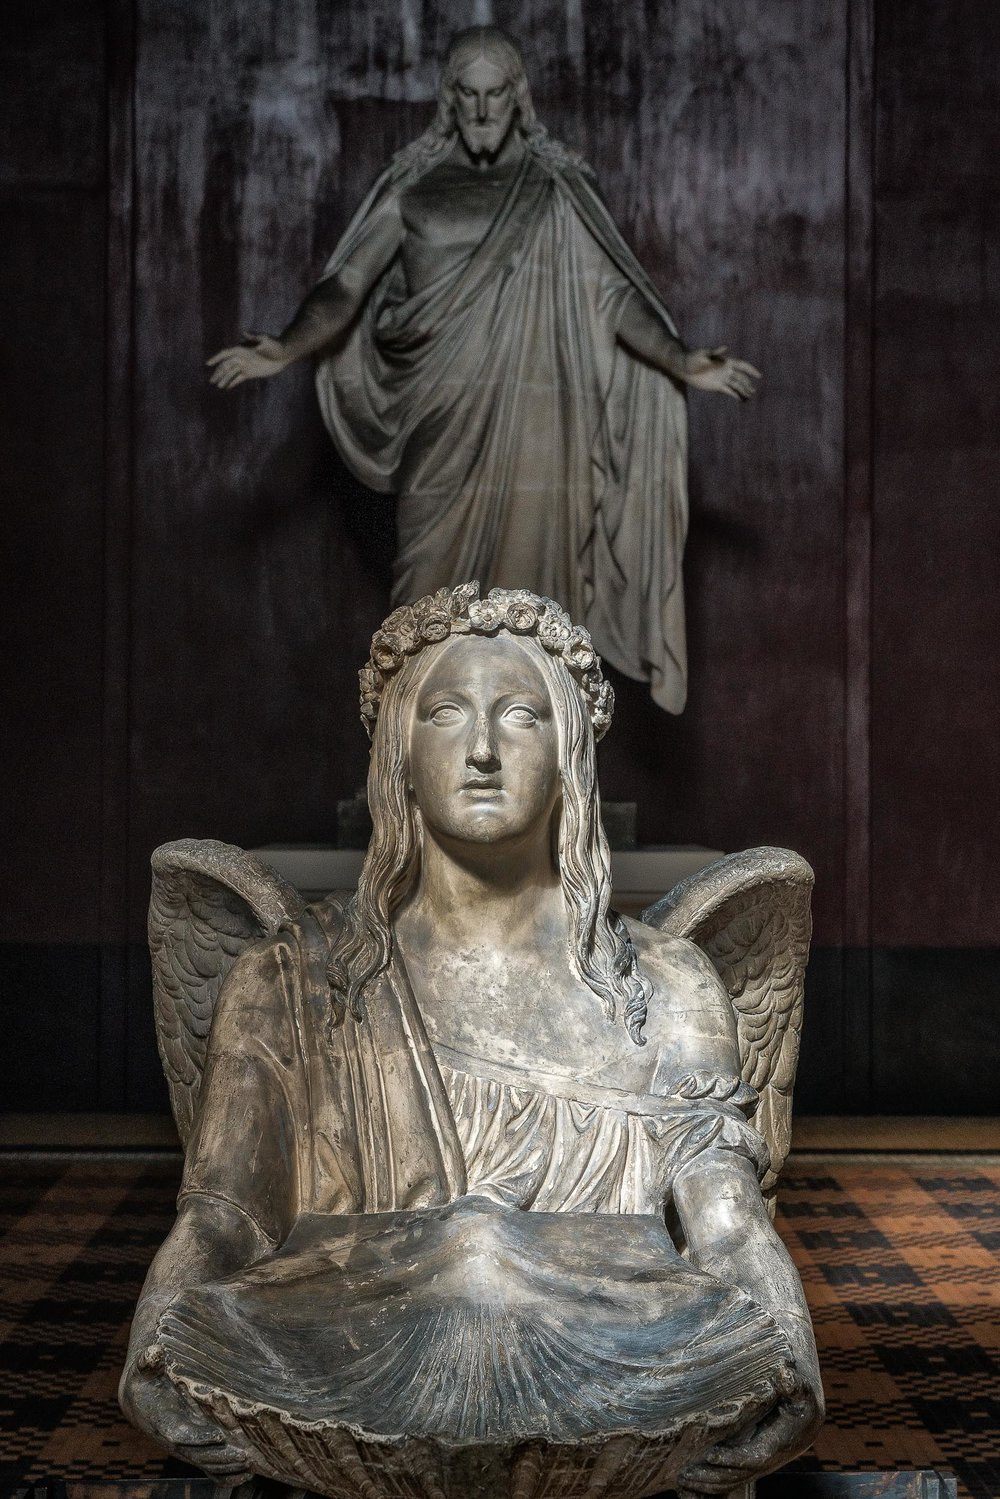 Angel and Christ Statues, Thorvaldsens Museum, Copenhagen